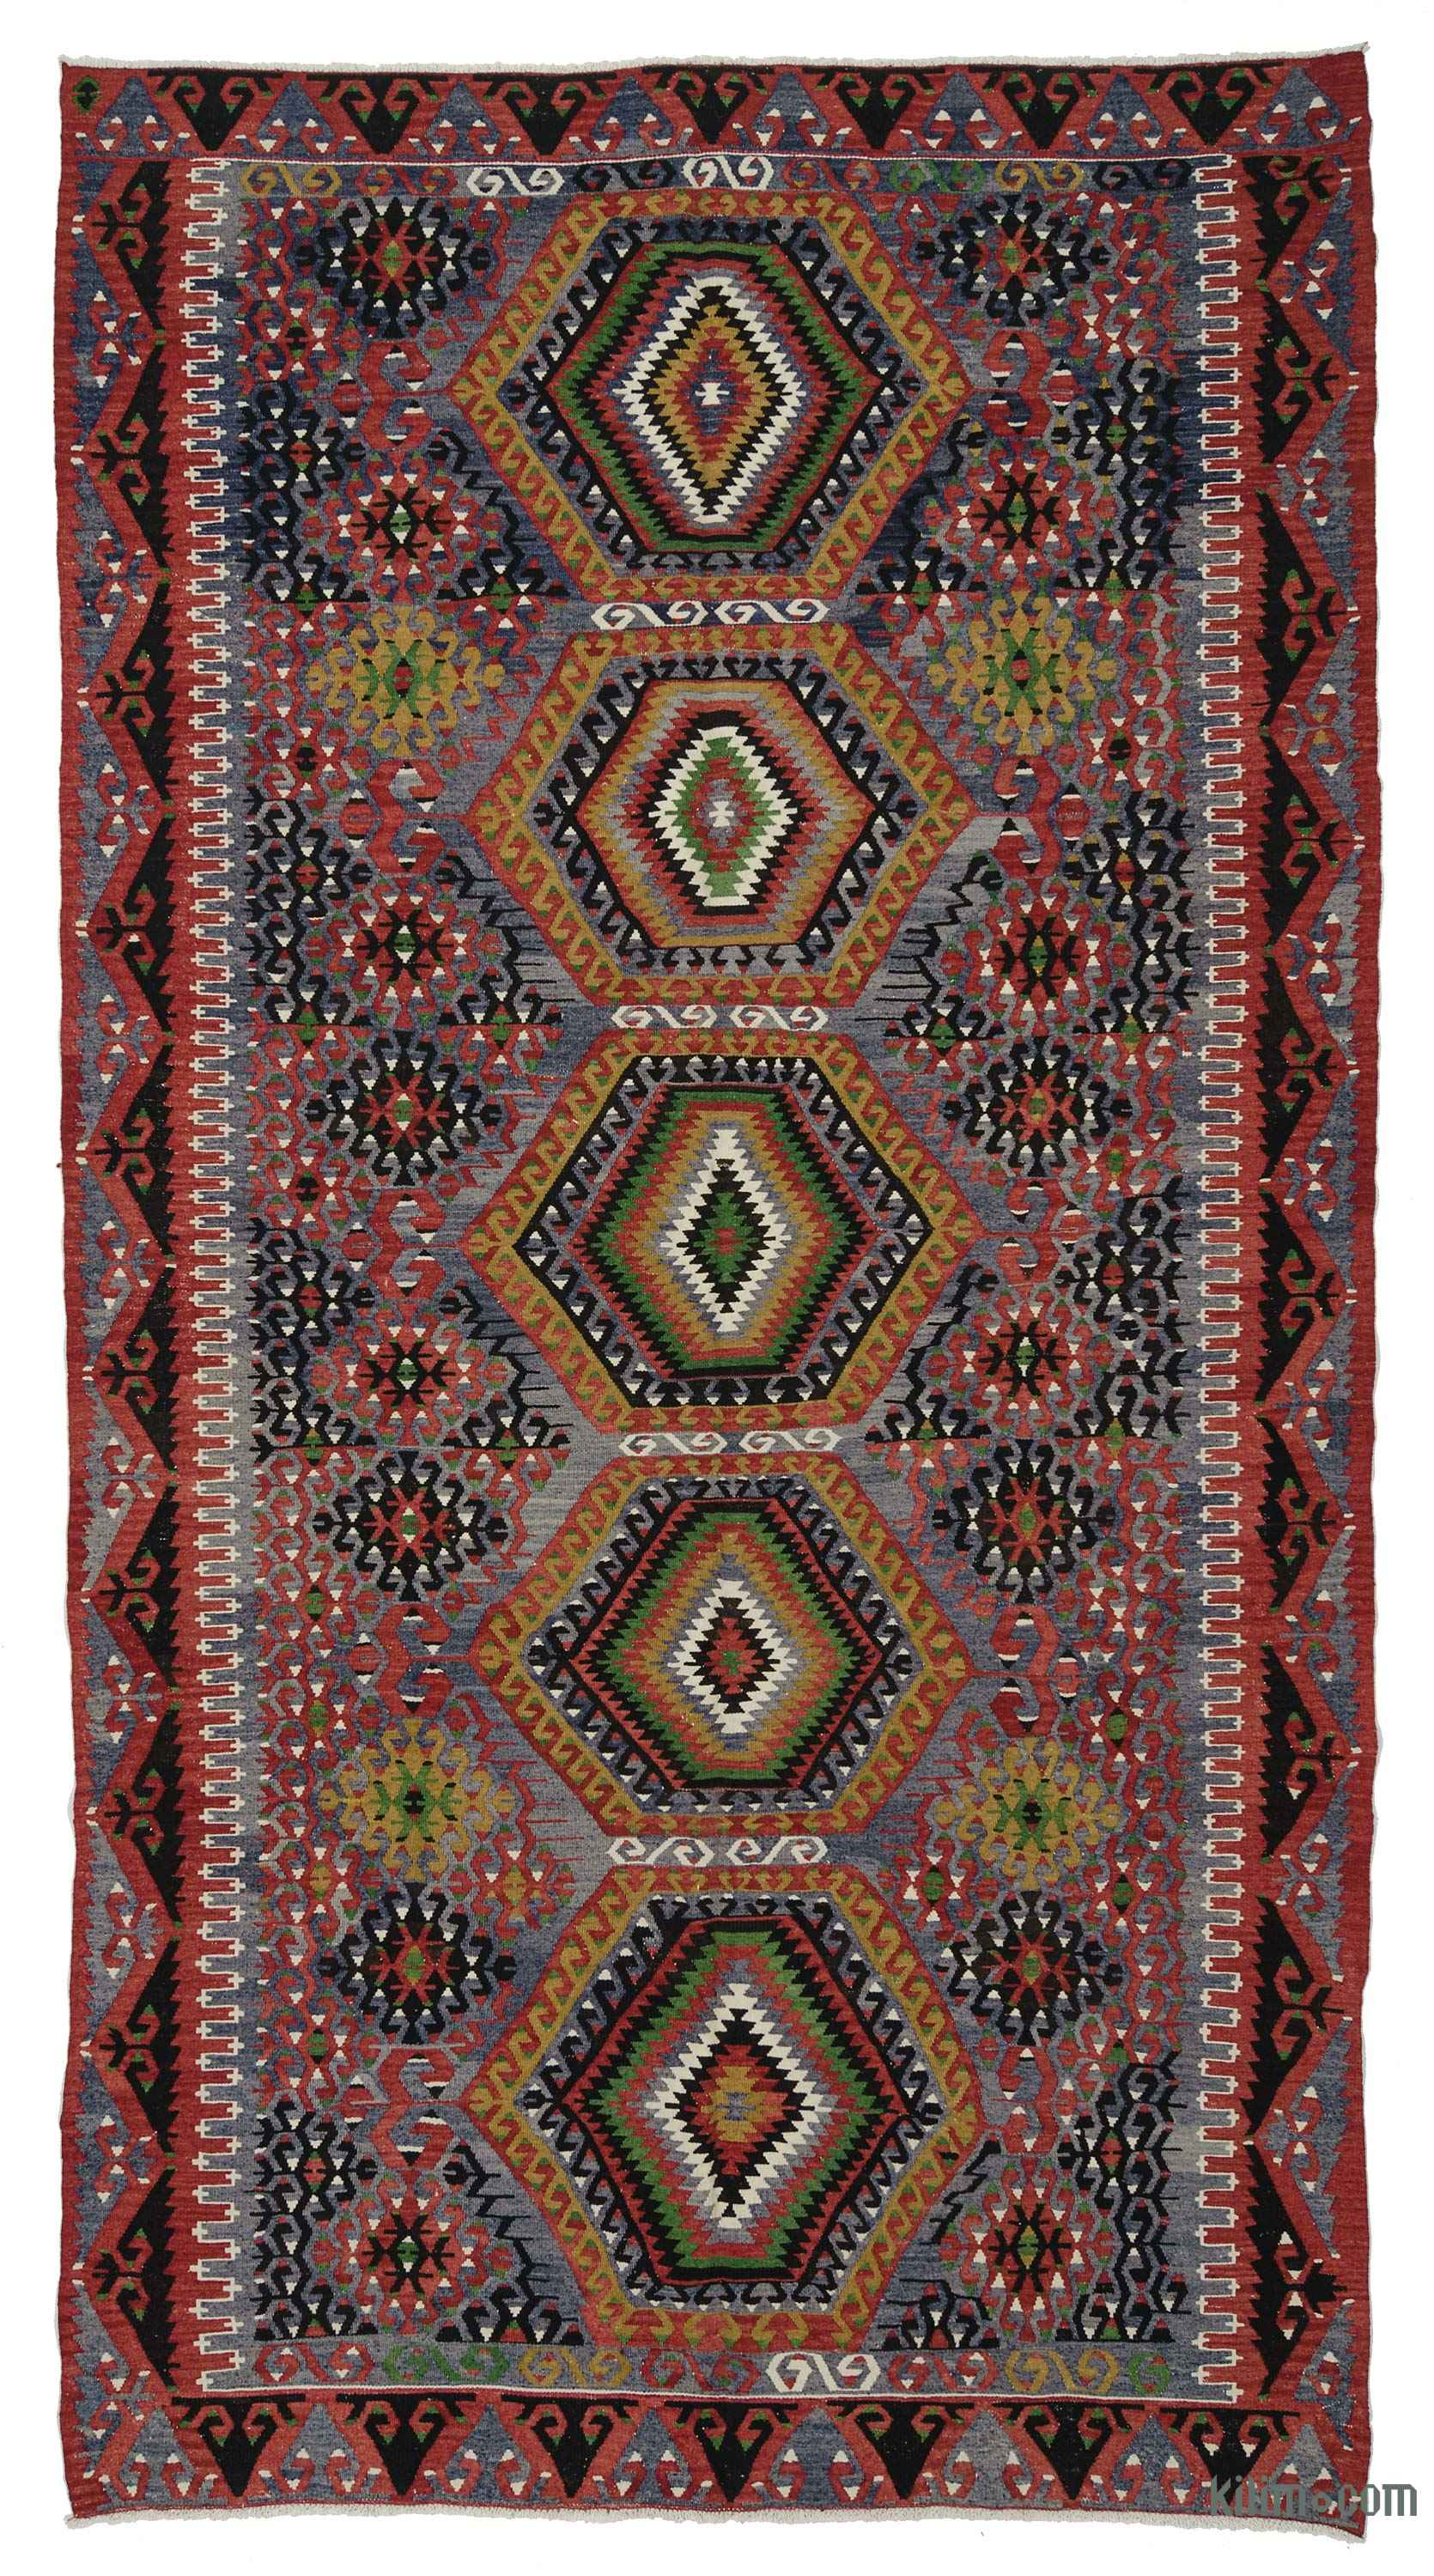 Red Light Blue Vintage Esme Kilim Rug 6 3 X 11 8 75 In 140